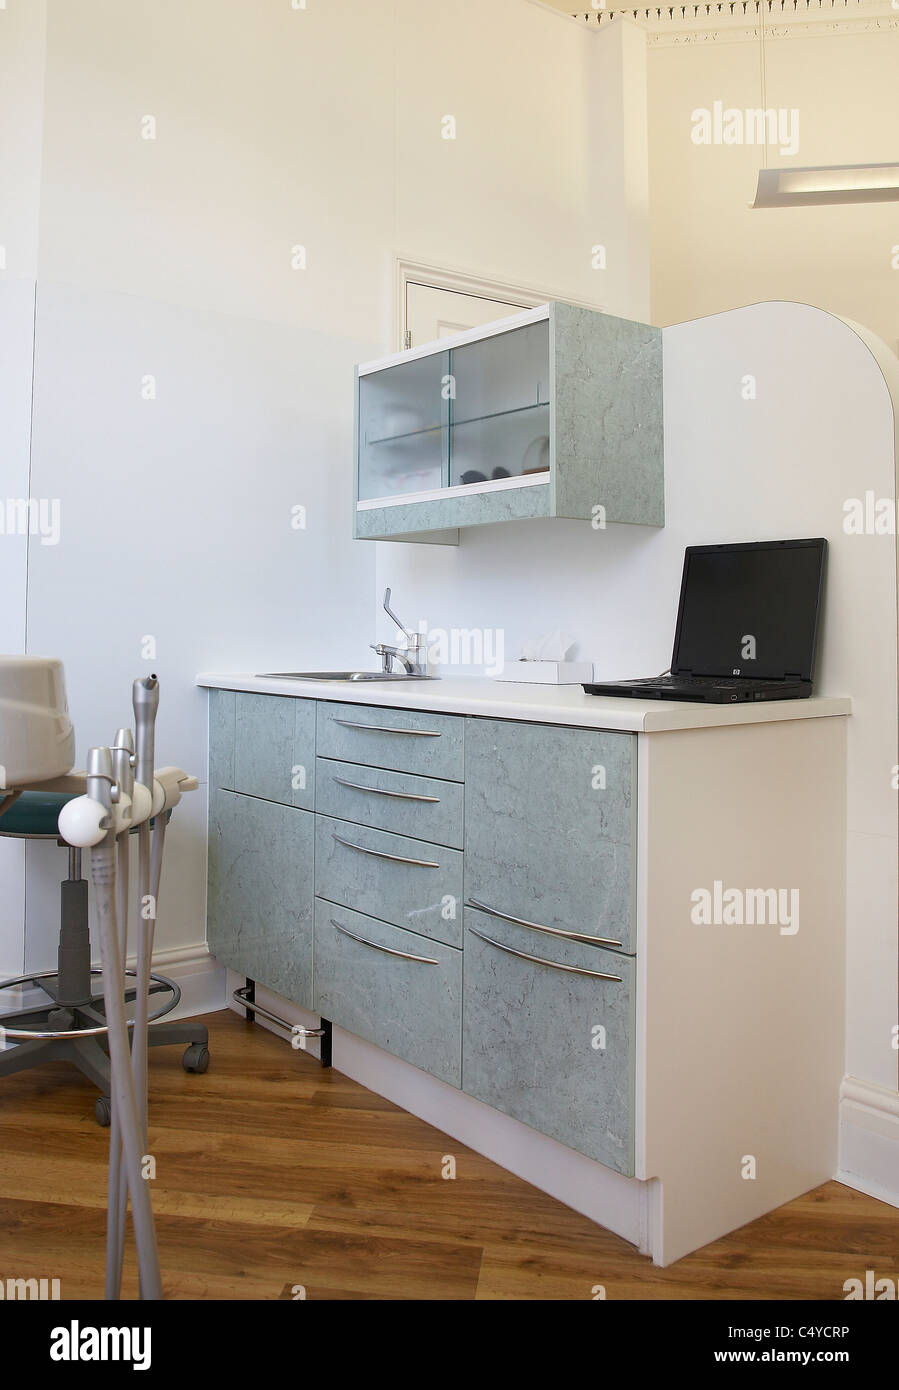 Storage Cabinets In A Dentistry Office Stock Photo 37482138 Alamy